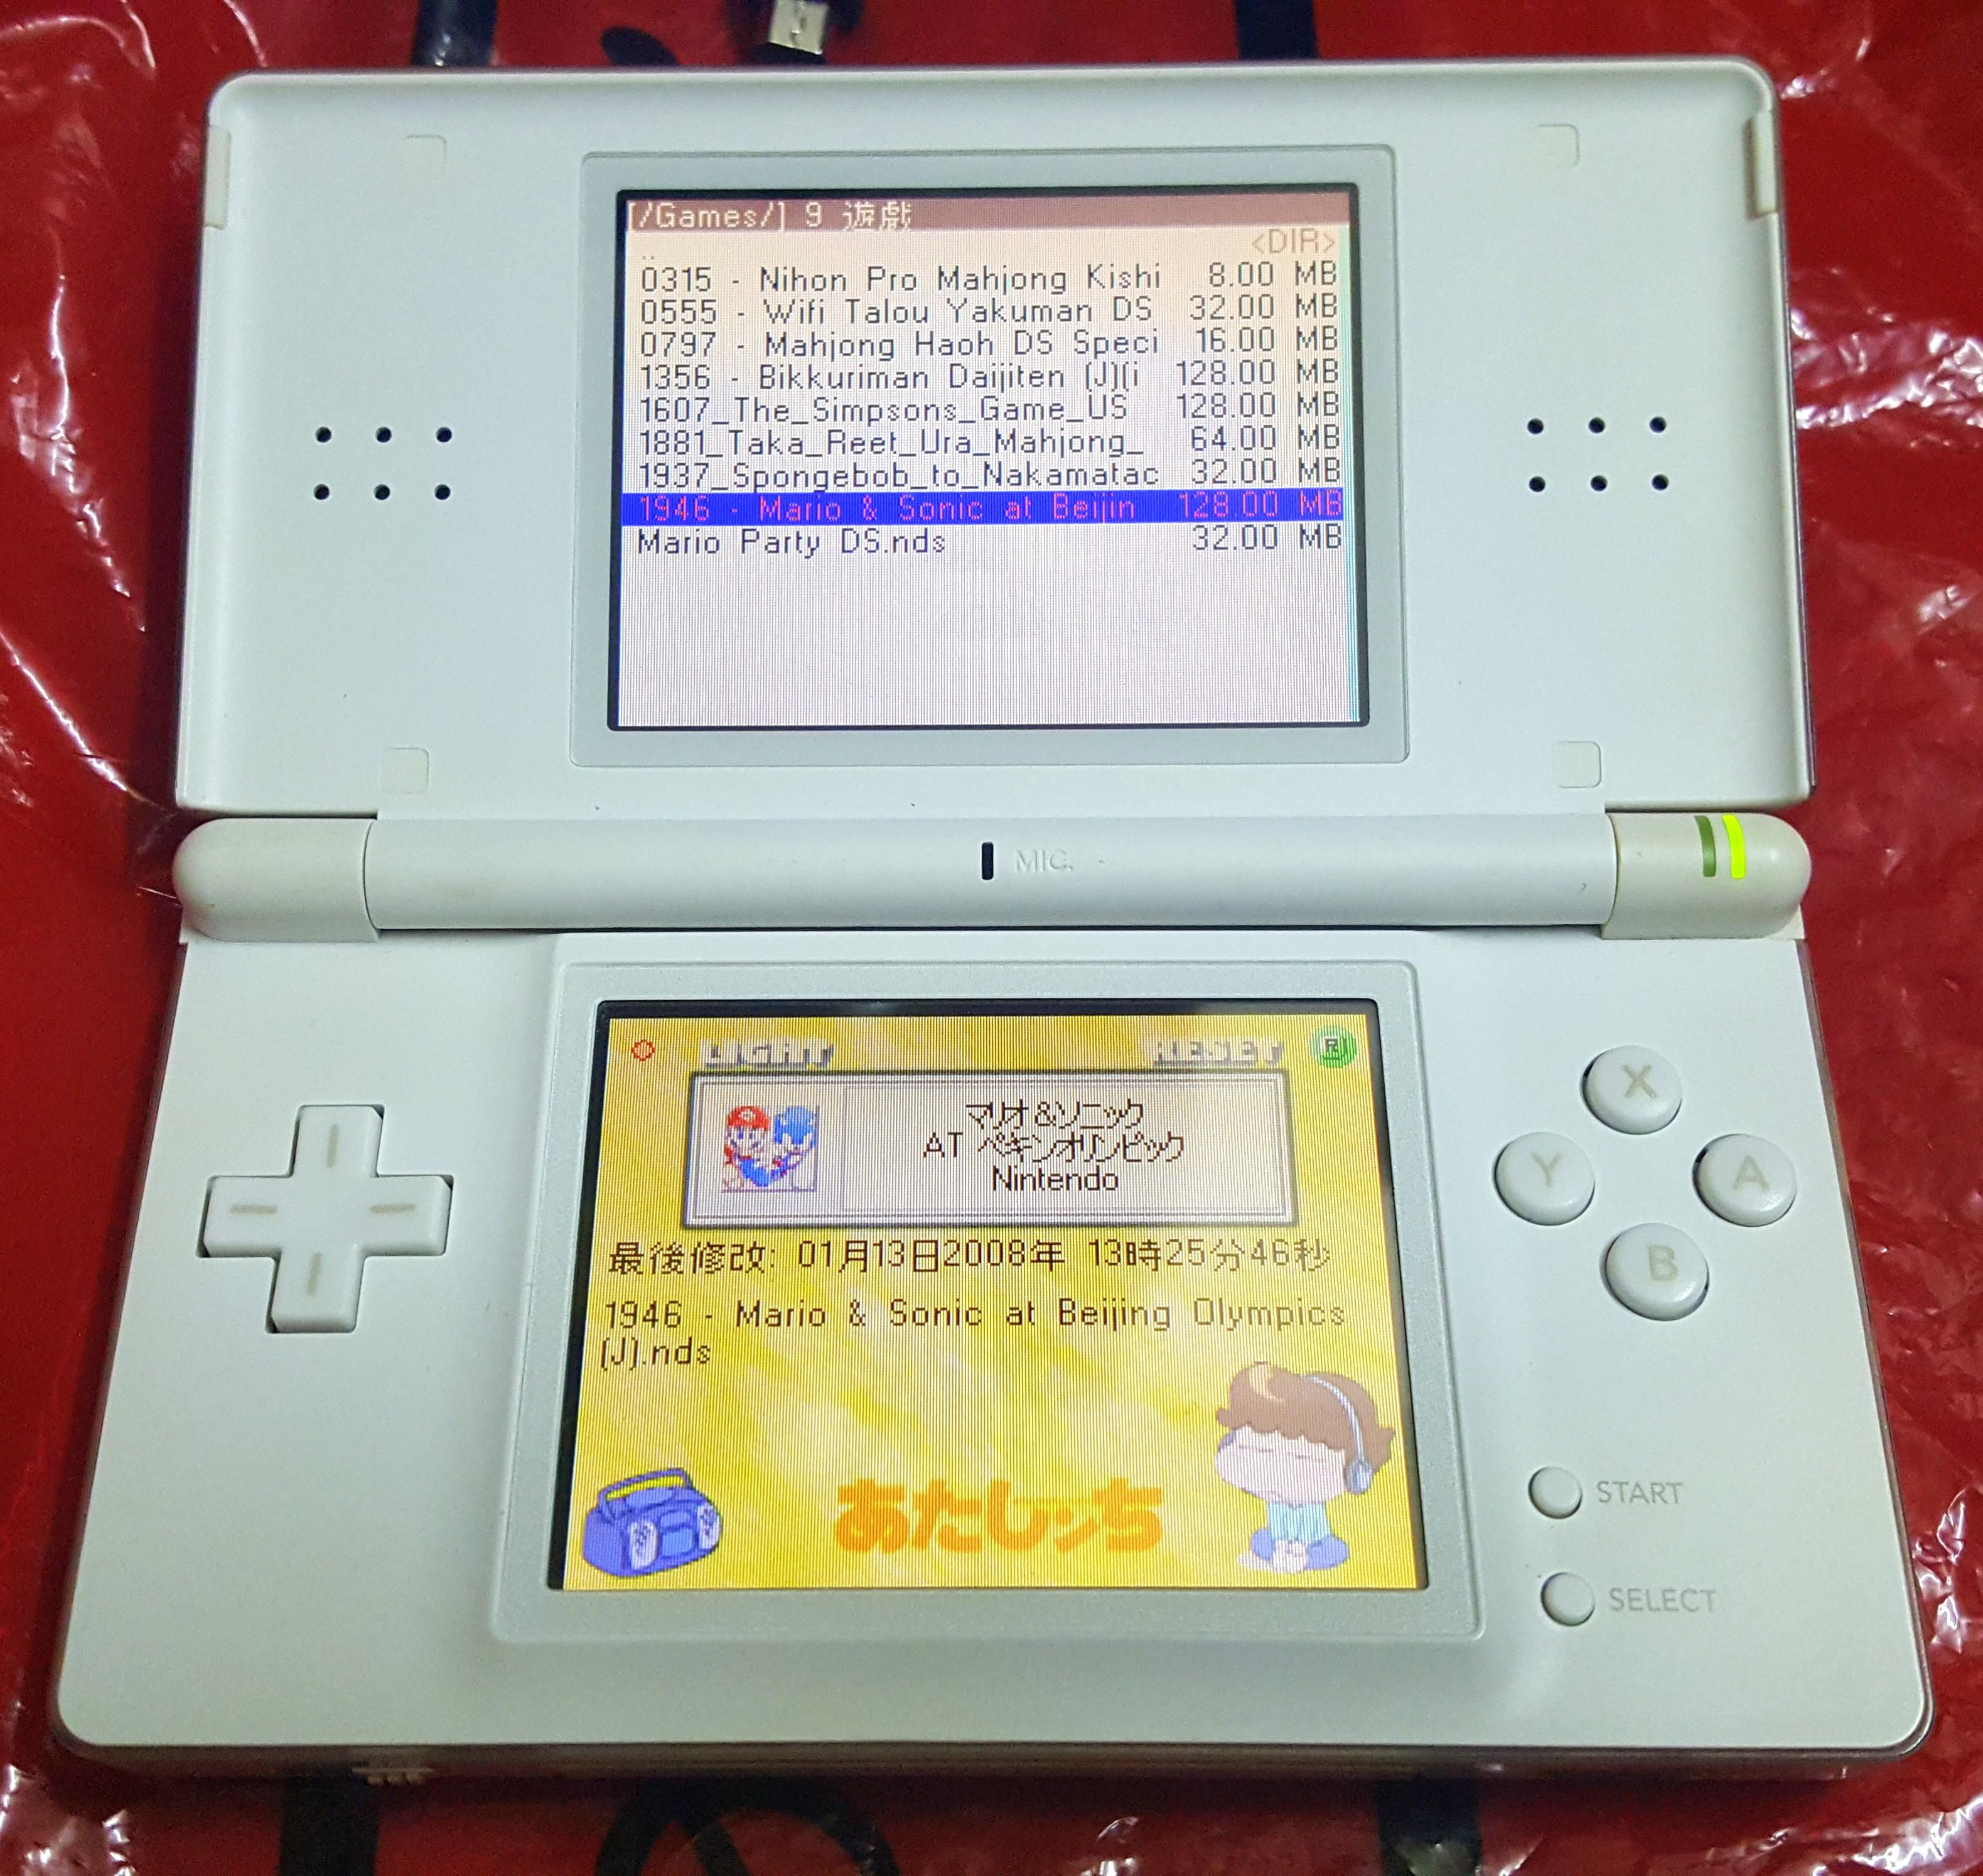 Nintendo DS Lite, With R4 Card 1 GB SD Card, Have Only 9 NDS Games. Also Have USB Cable For Charging The Nds. 80%~75% New.  100% Work Nintendo DS.